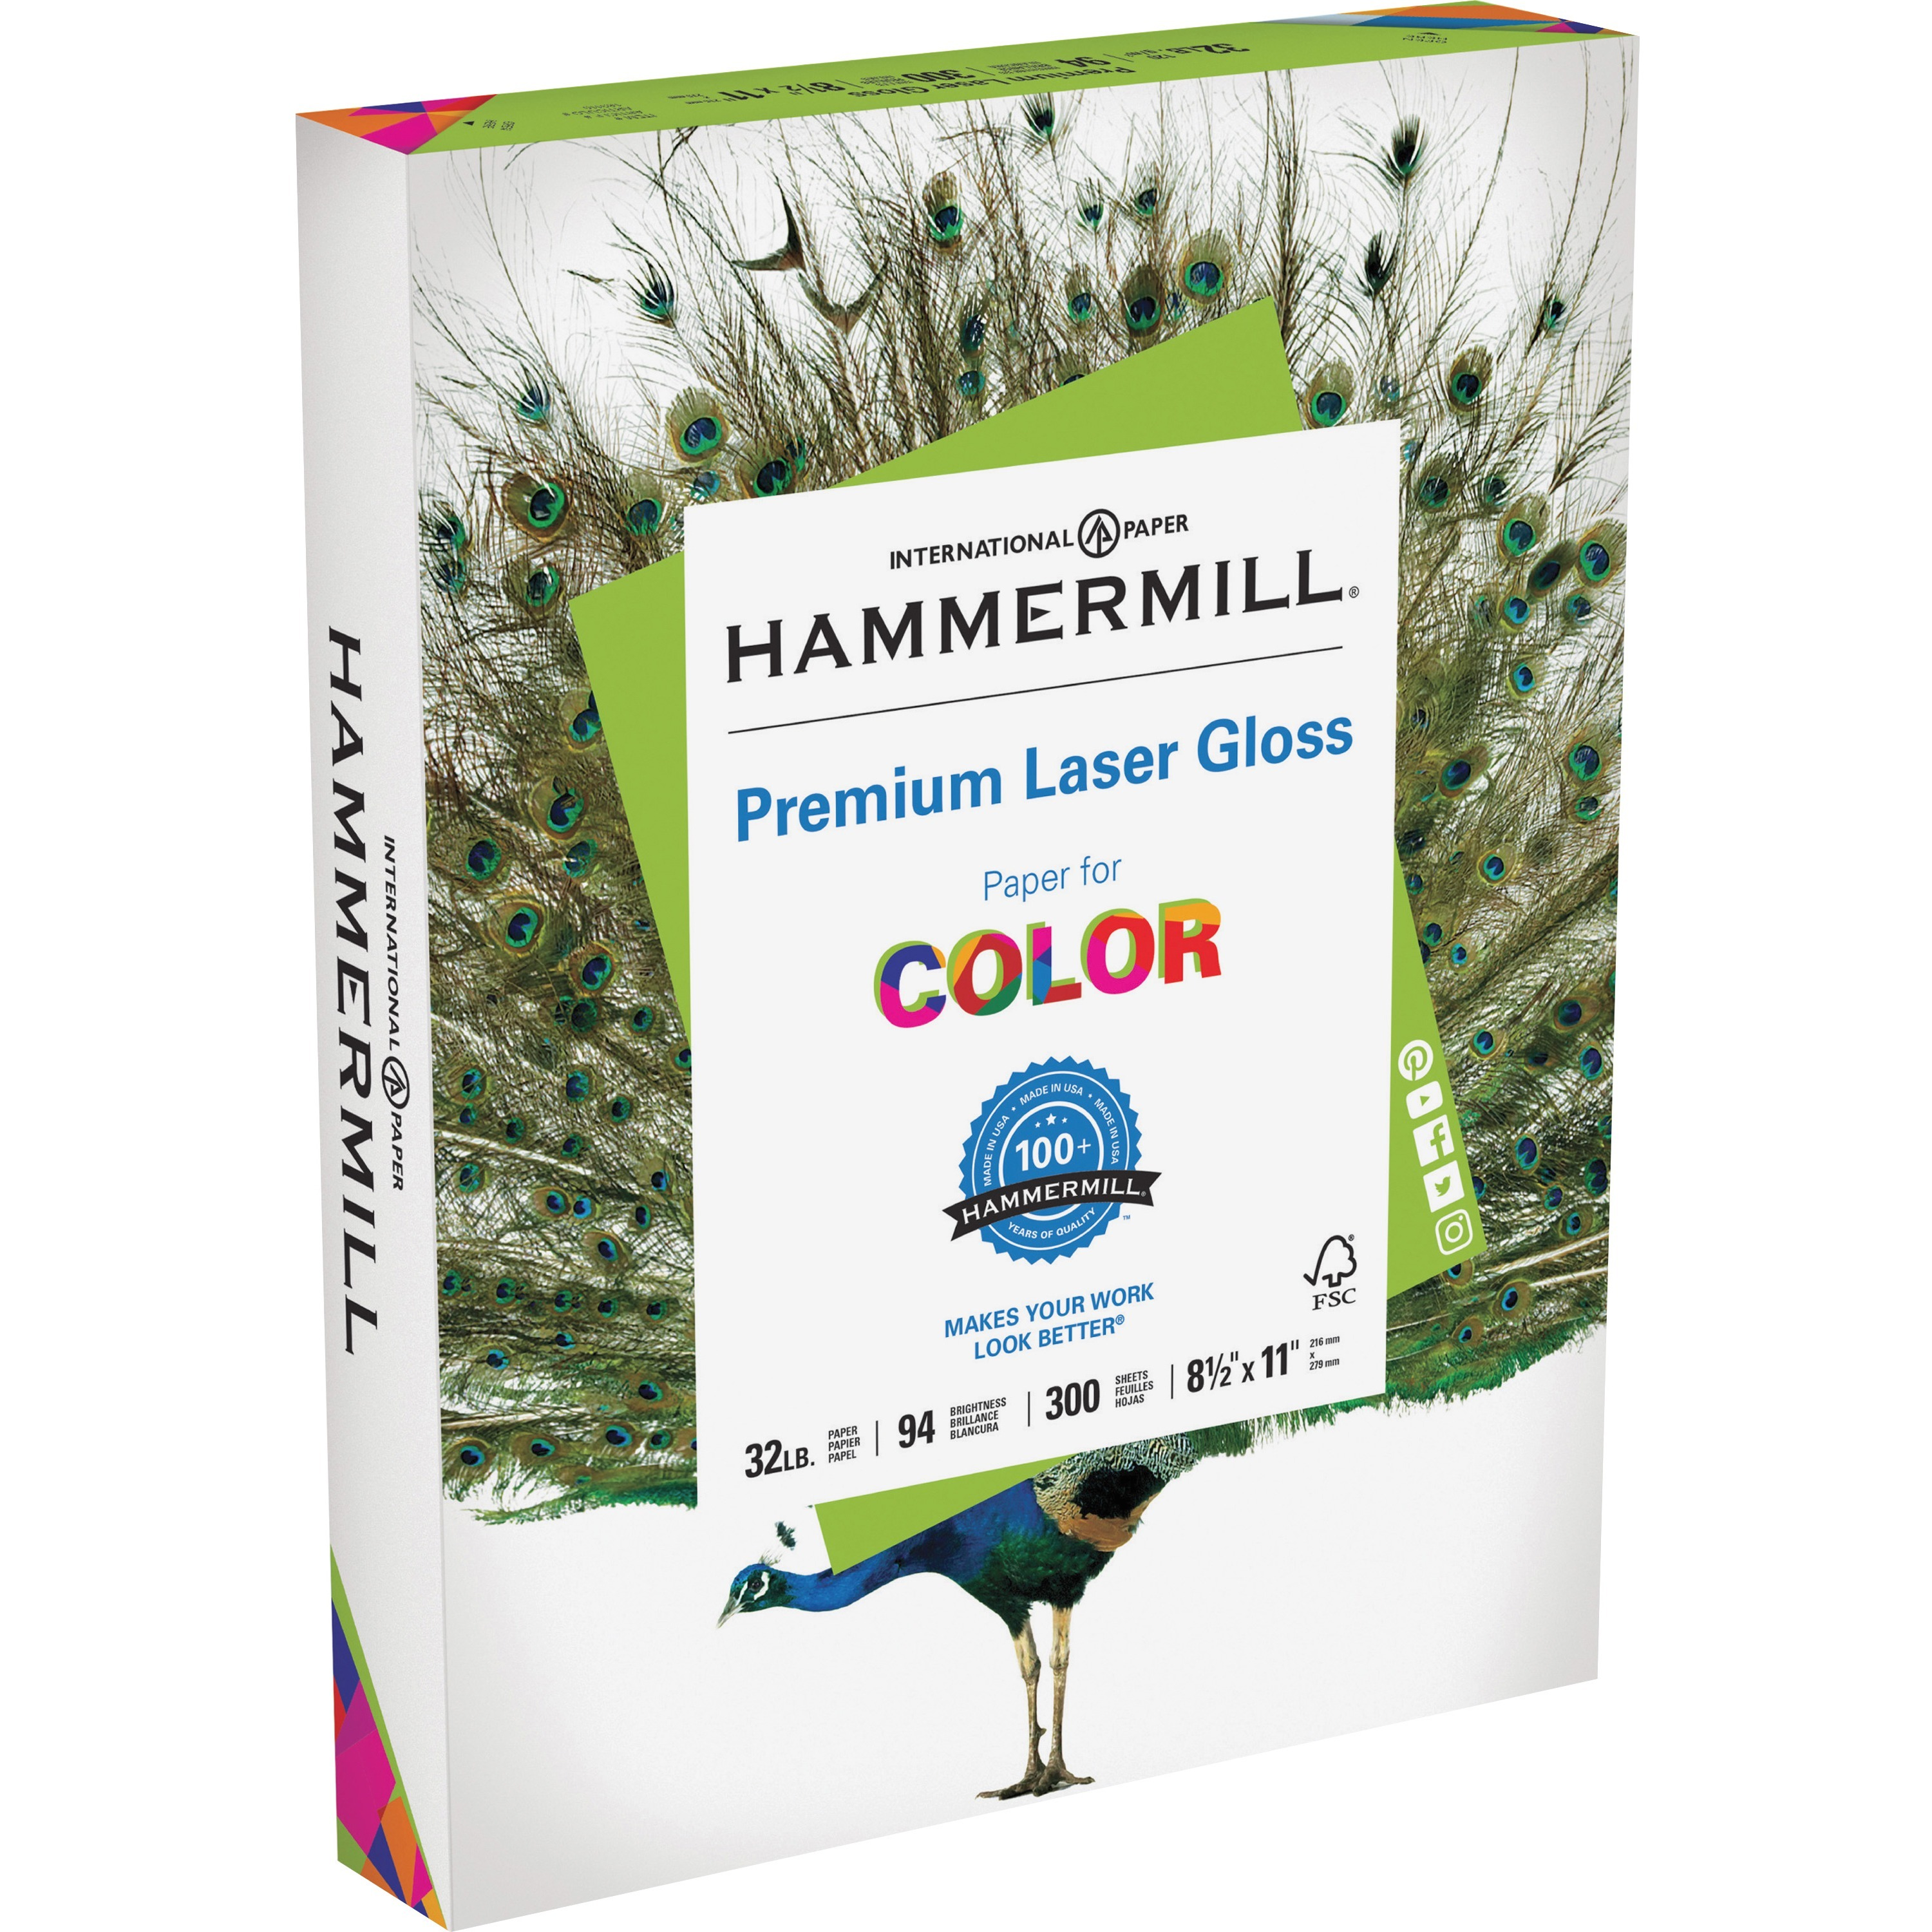 Hammermill, HAM163110, Color Laser Gloss Paper, 300 / Pack, White